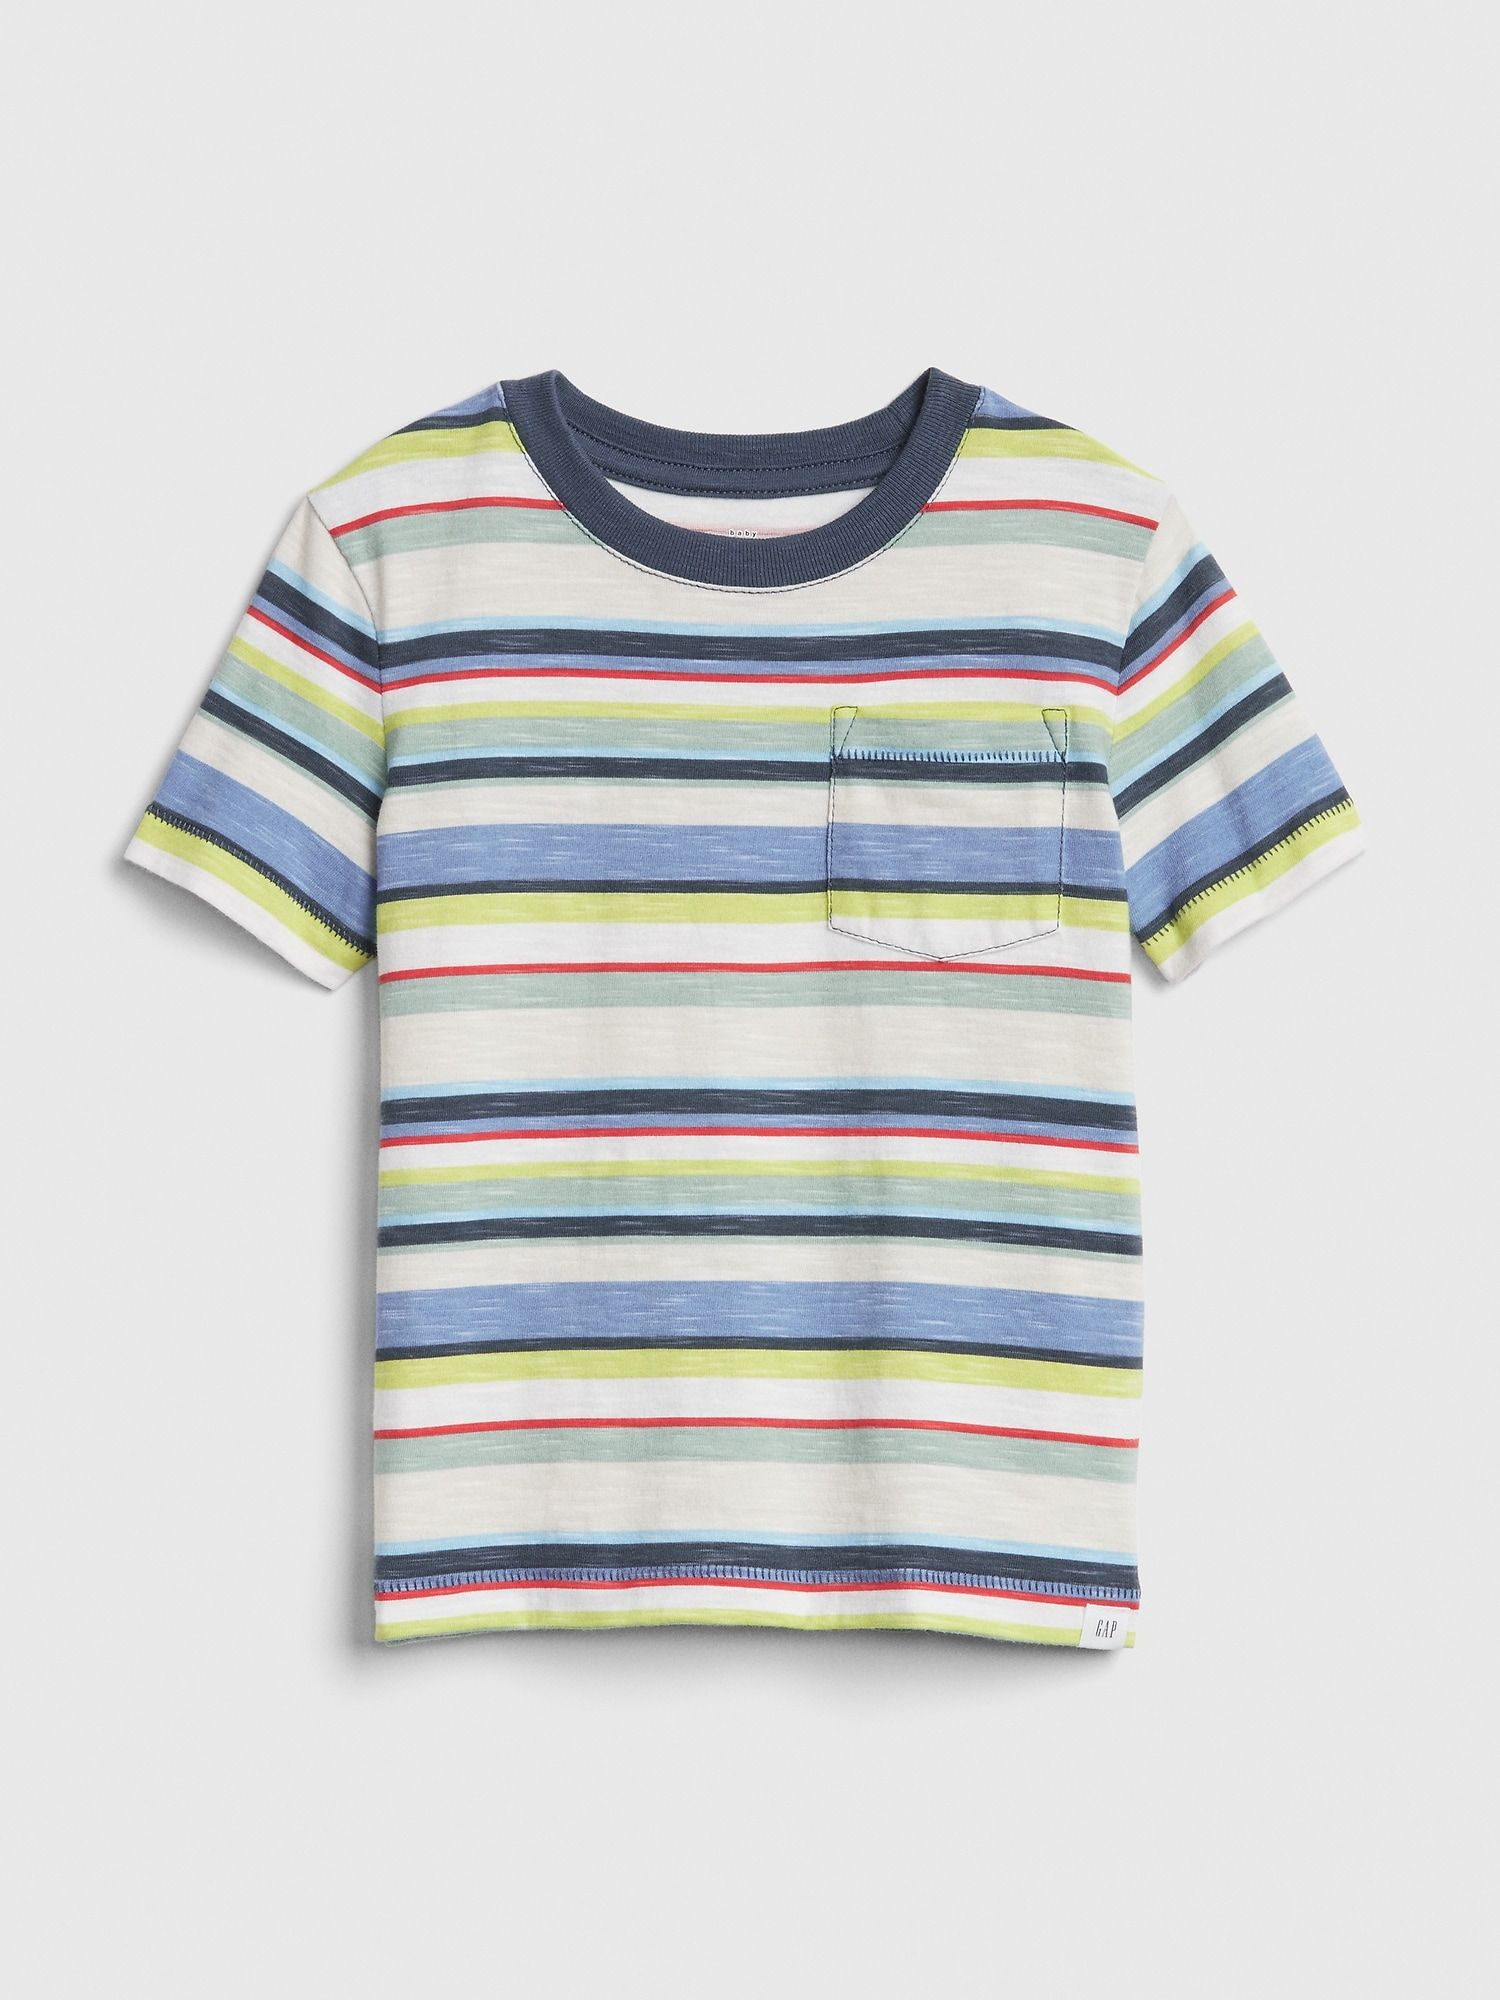 90a269dfe product Off White, Summer Clothes, Crew Neck, Gap, Collar Pattern, Summer